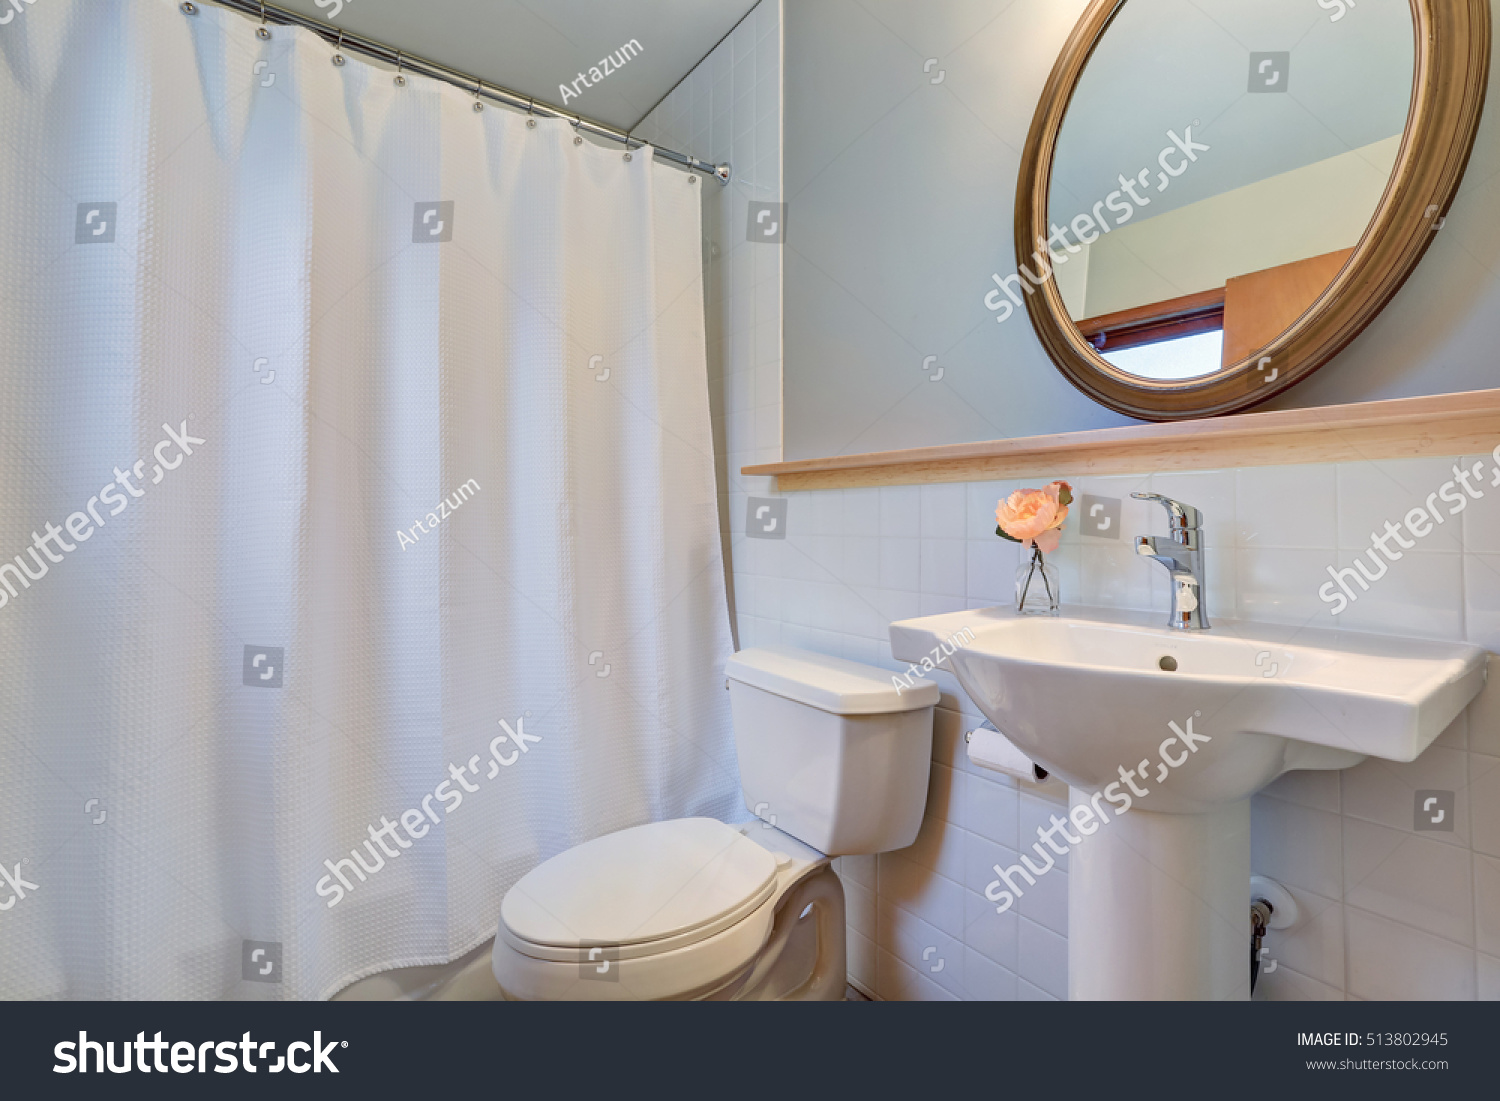 White Clean Bathroom Washbasin Stand Round Stock Photo & Image ...